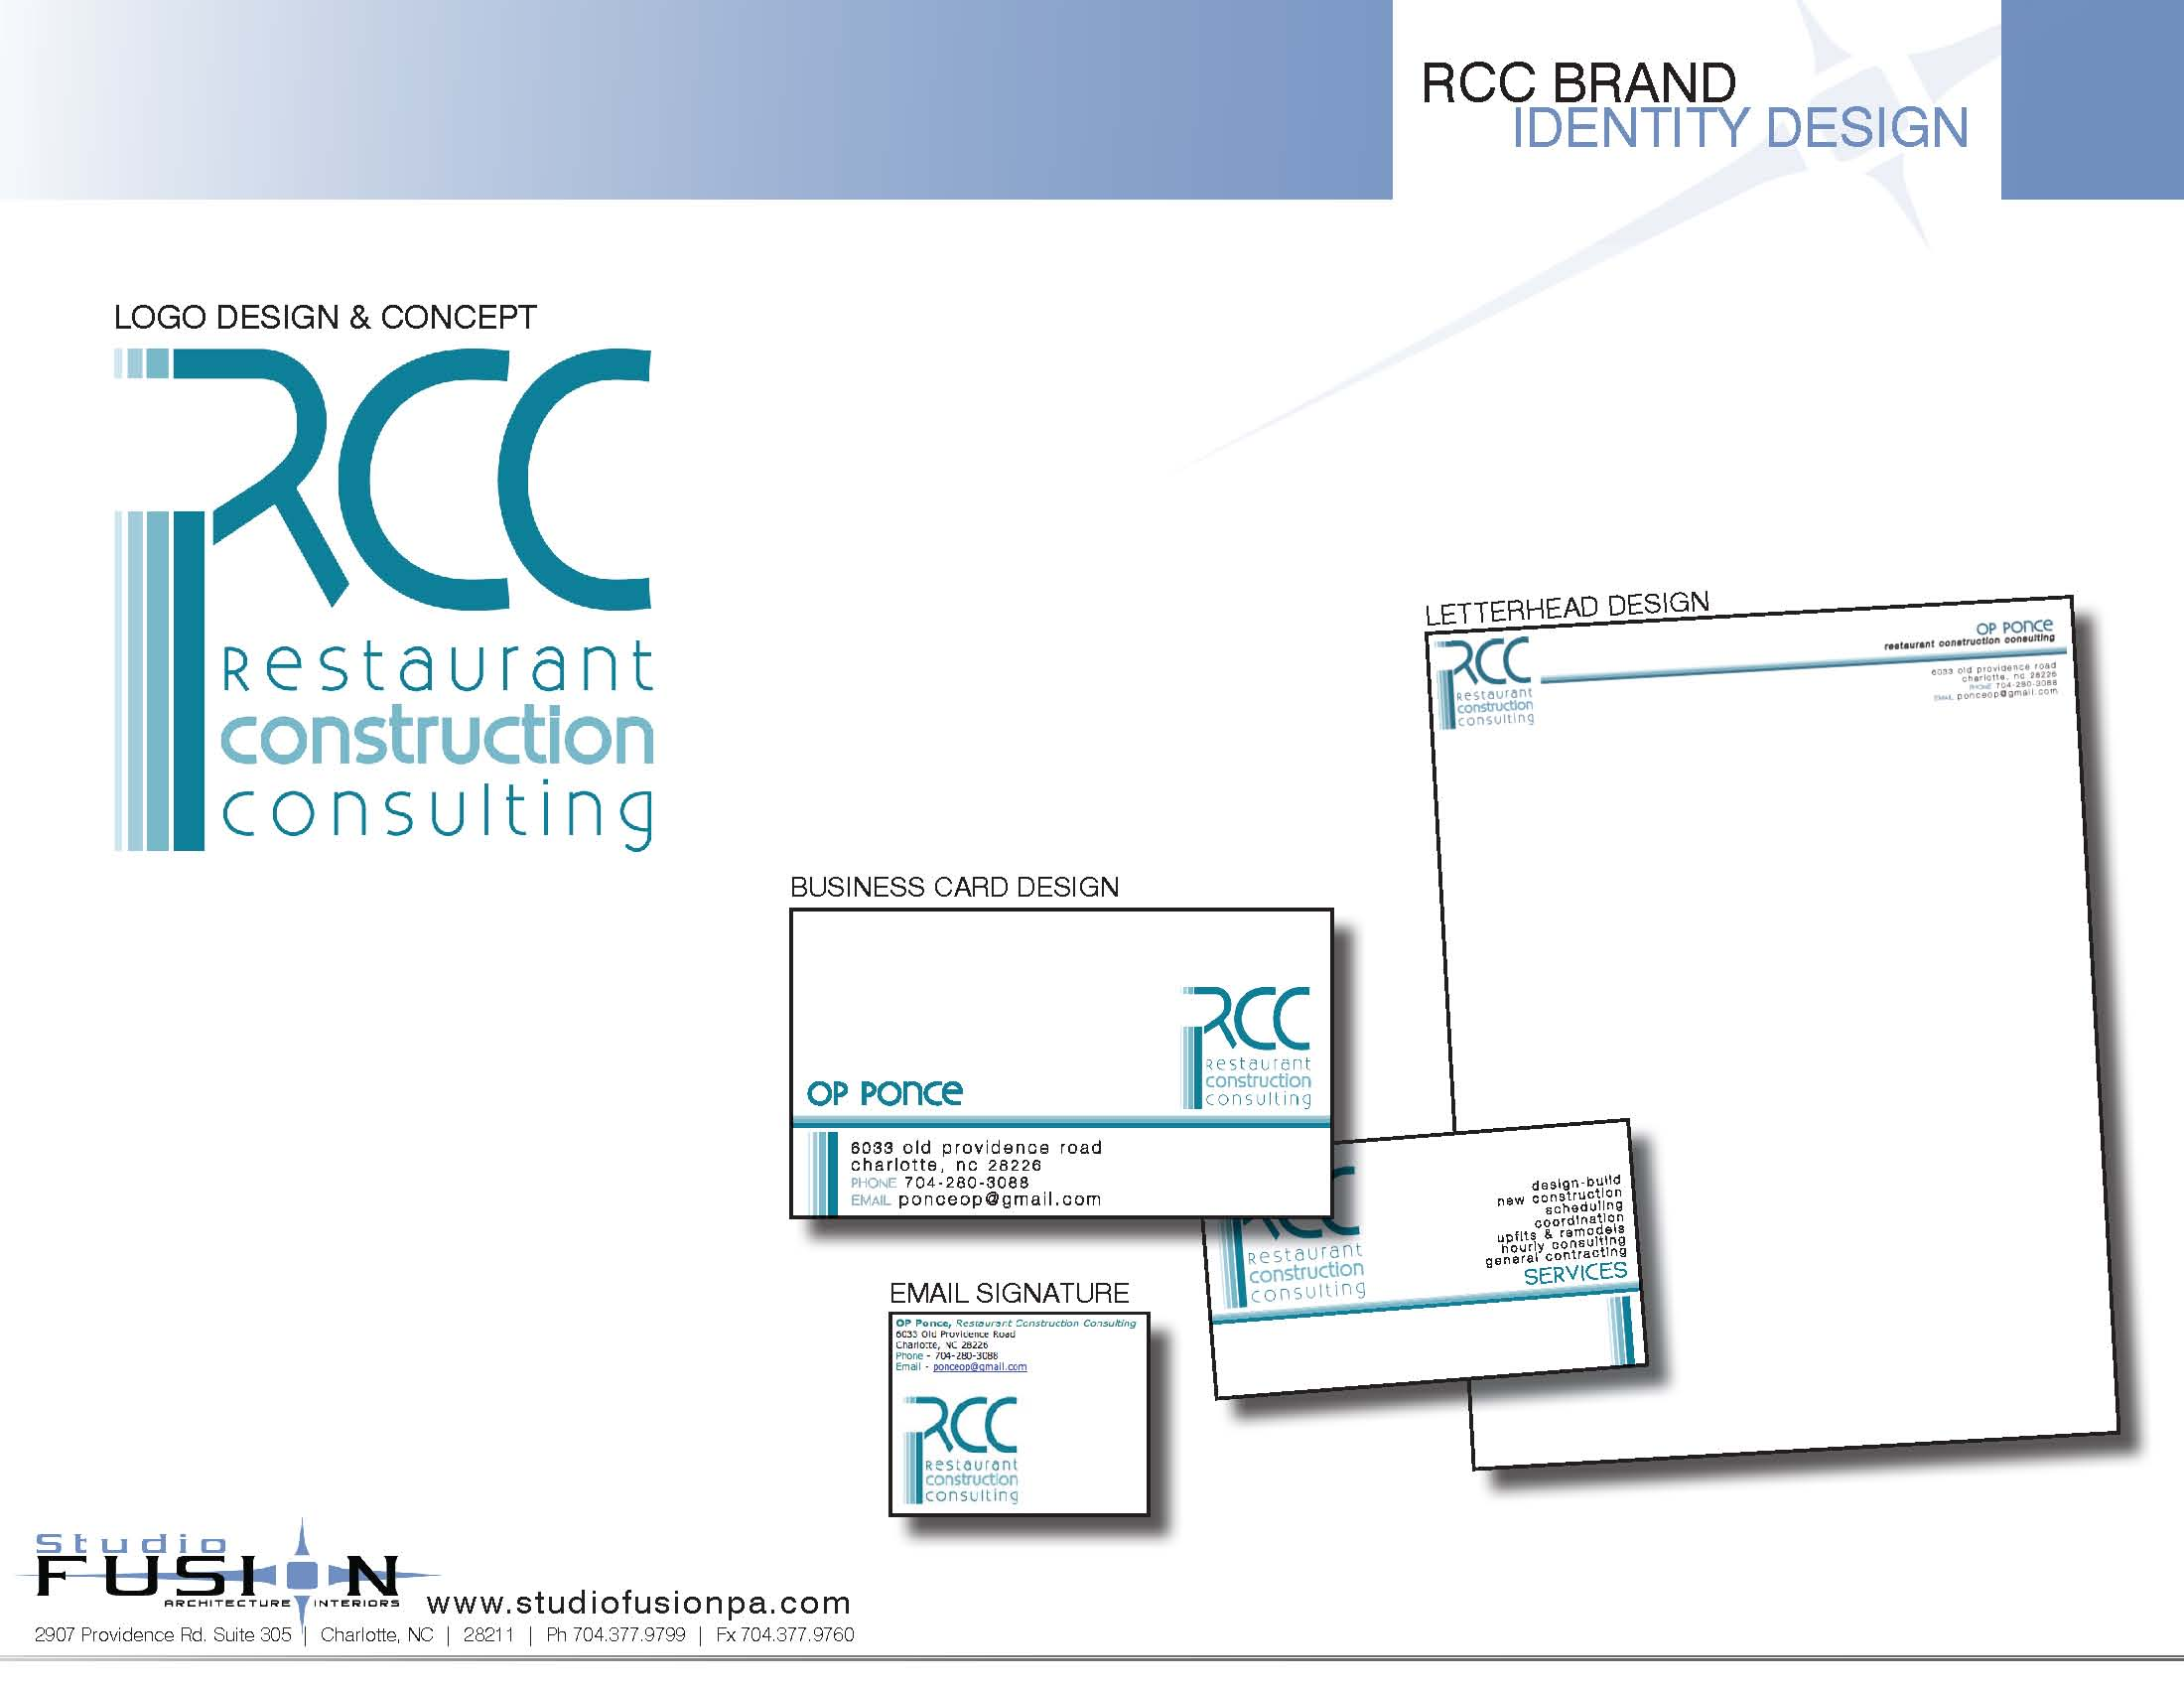 interior design firm helps new consulting firm with brand identity